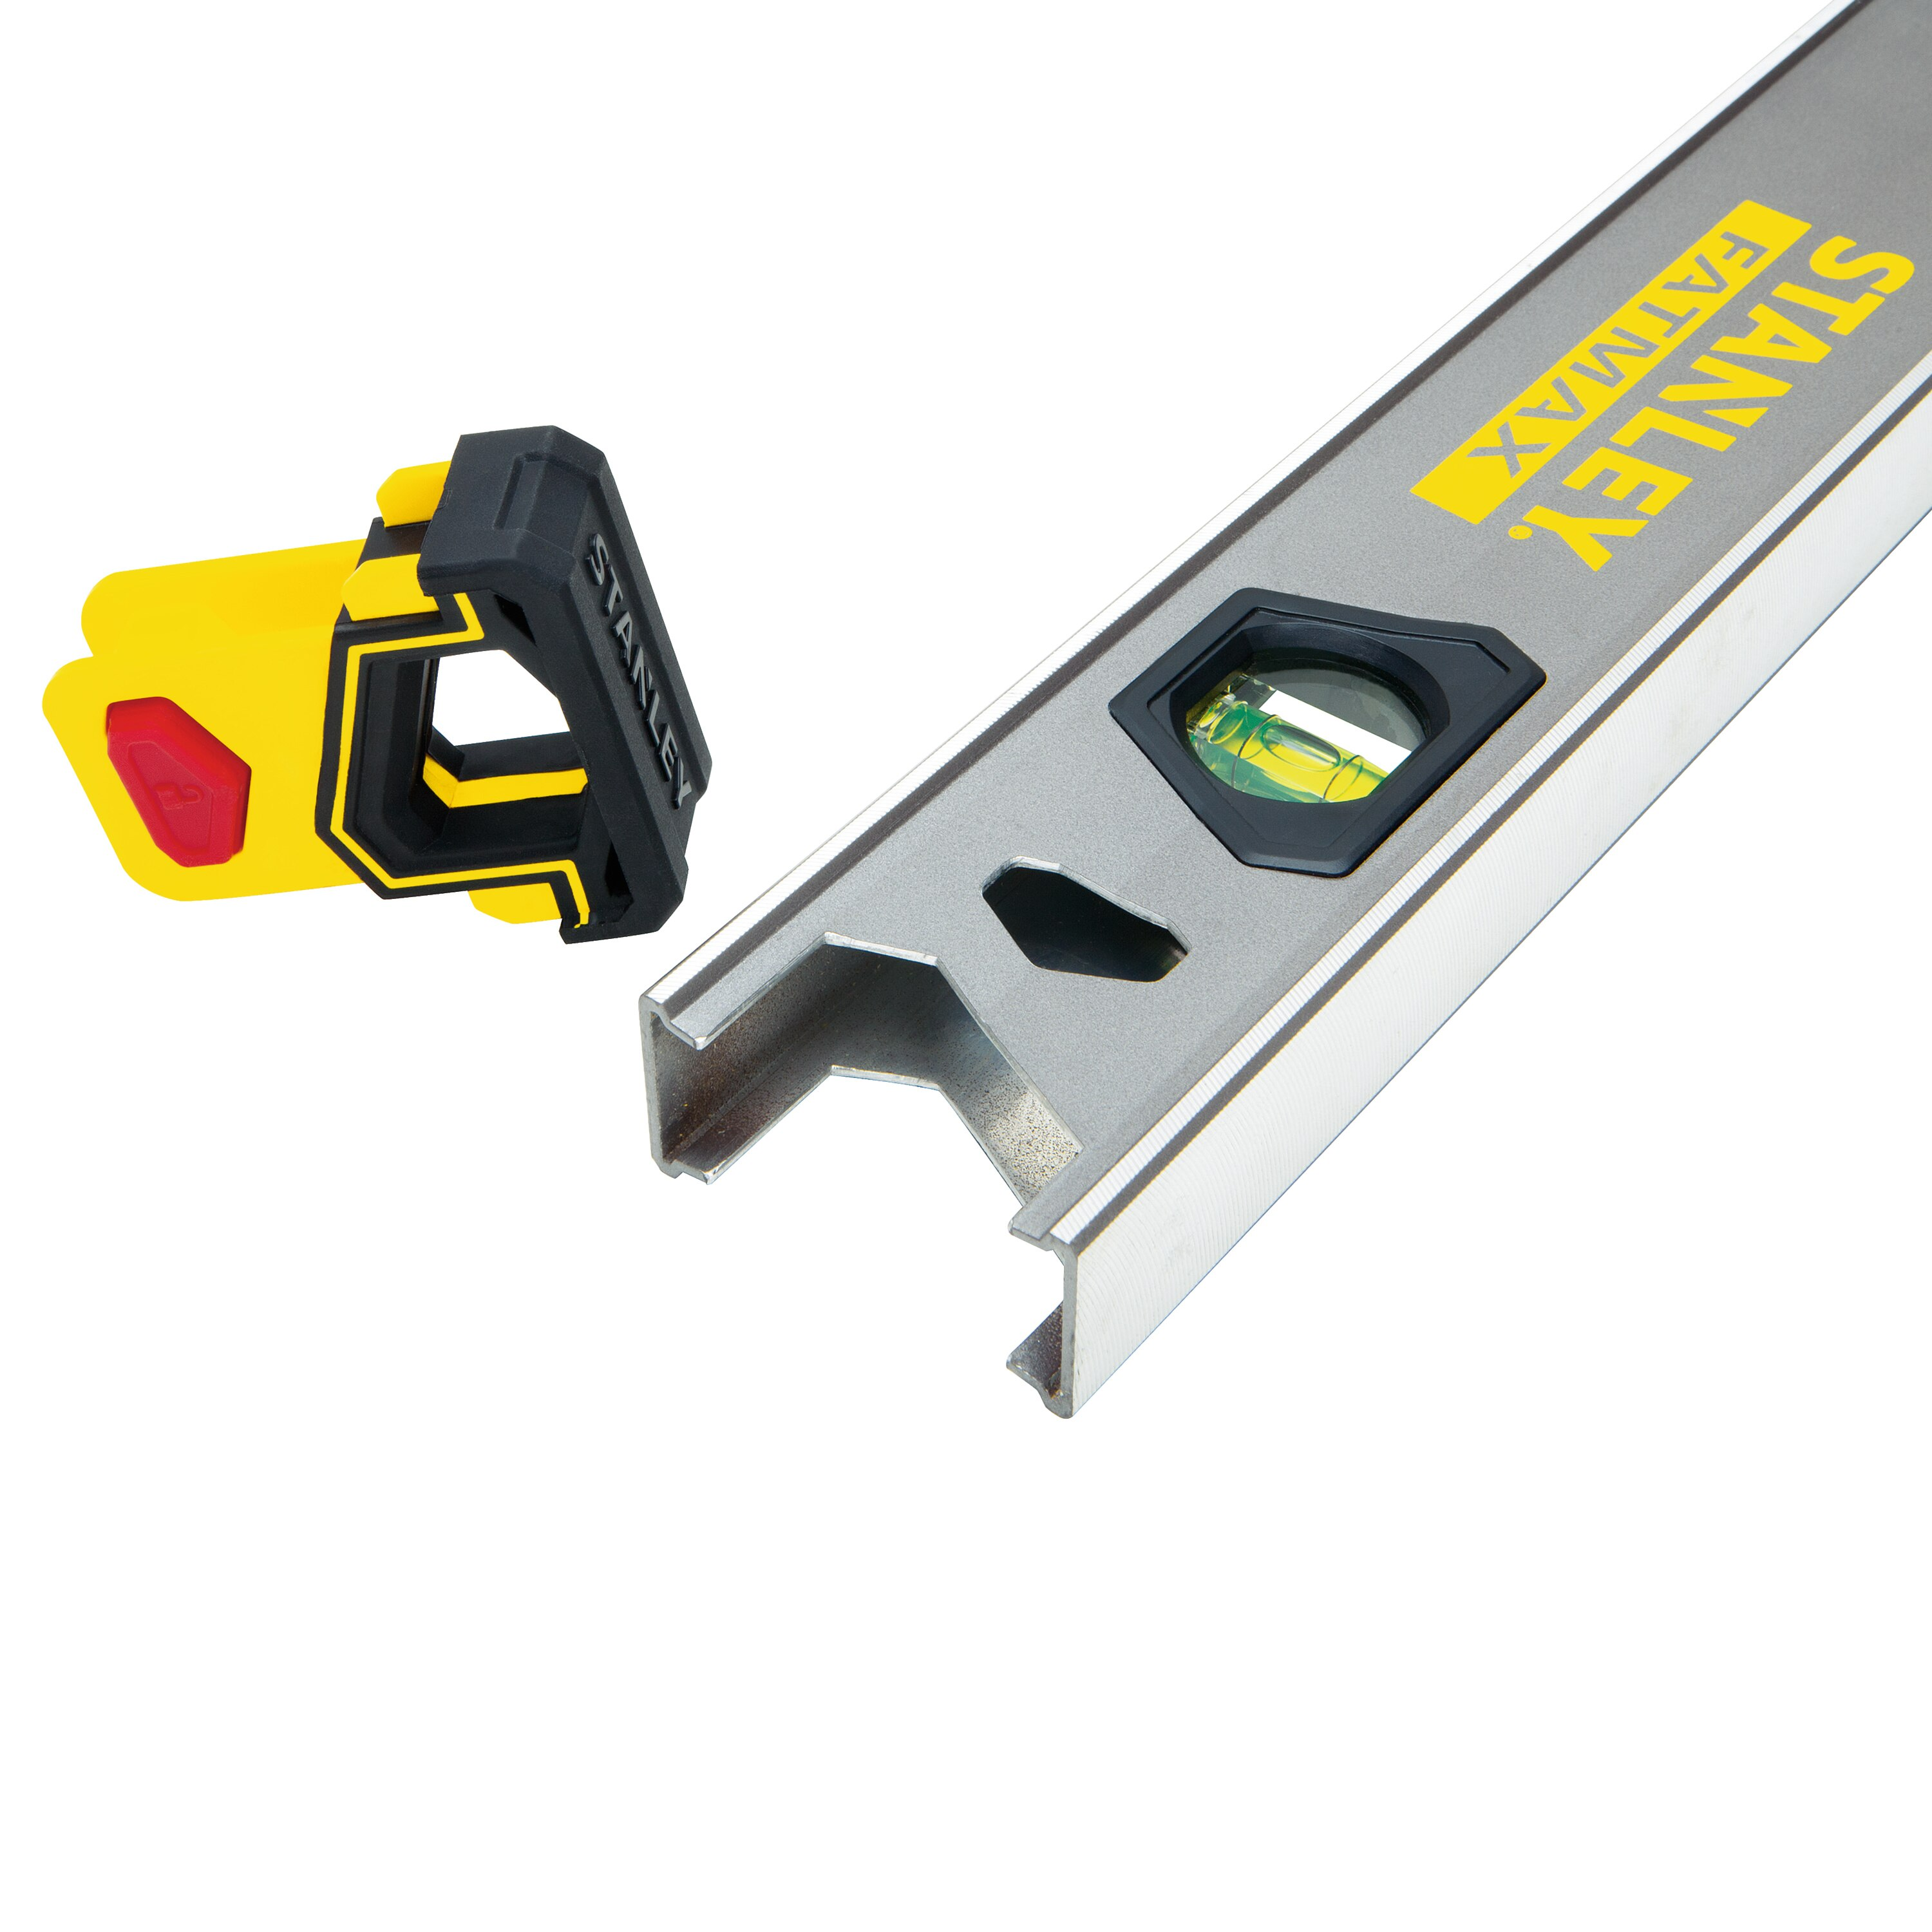 Stanley Tools - 72 in FATMAX Premium Box Beam - FMHT42401